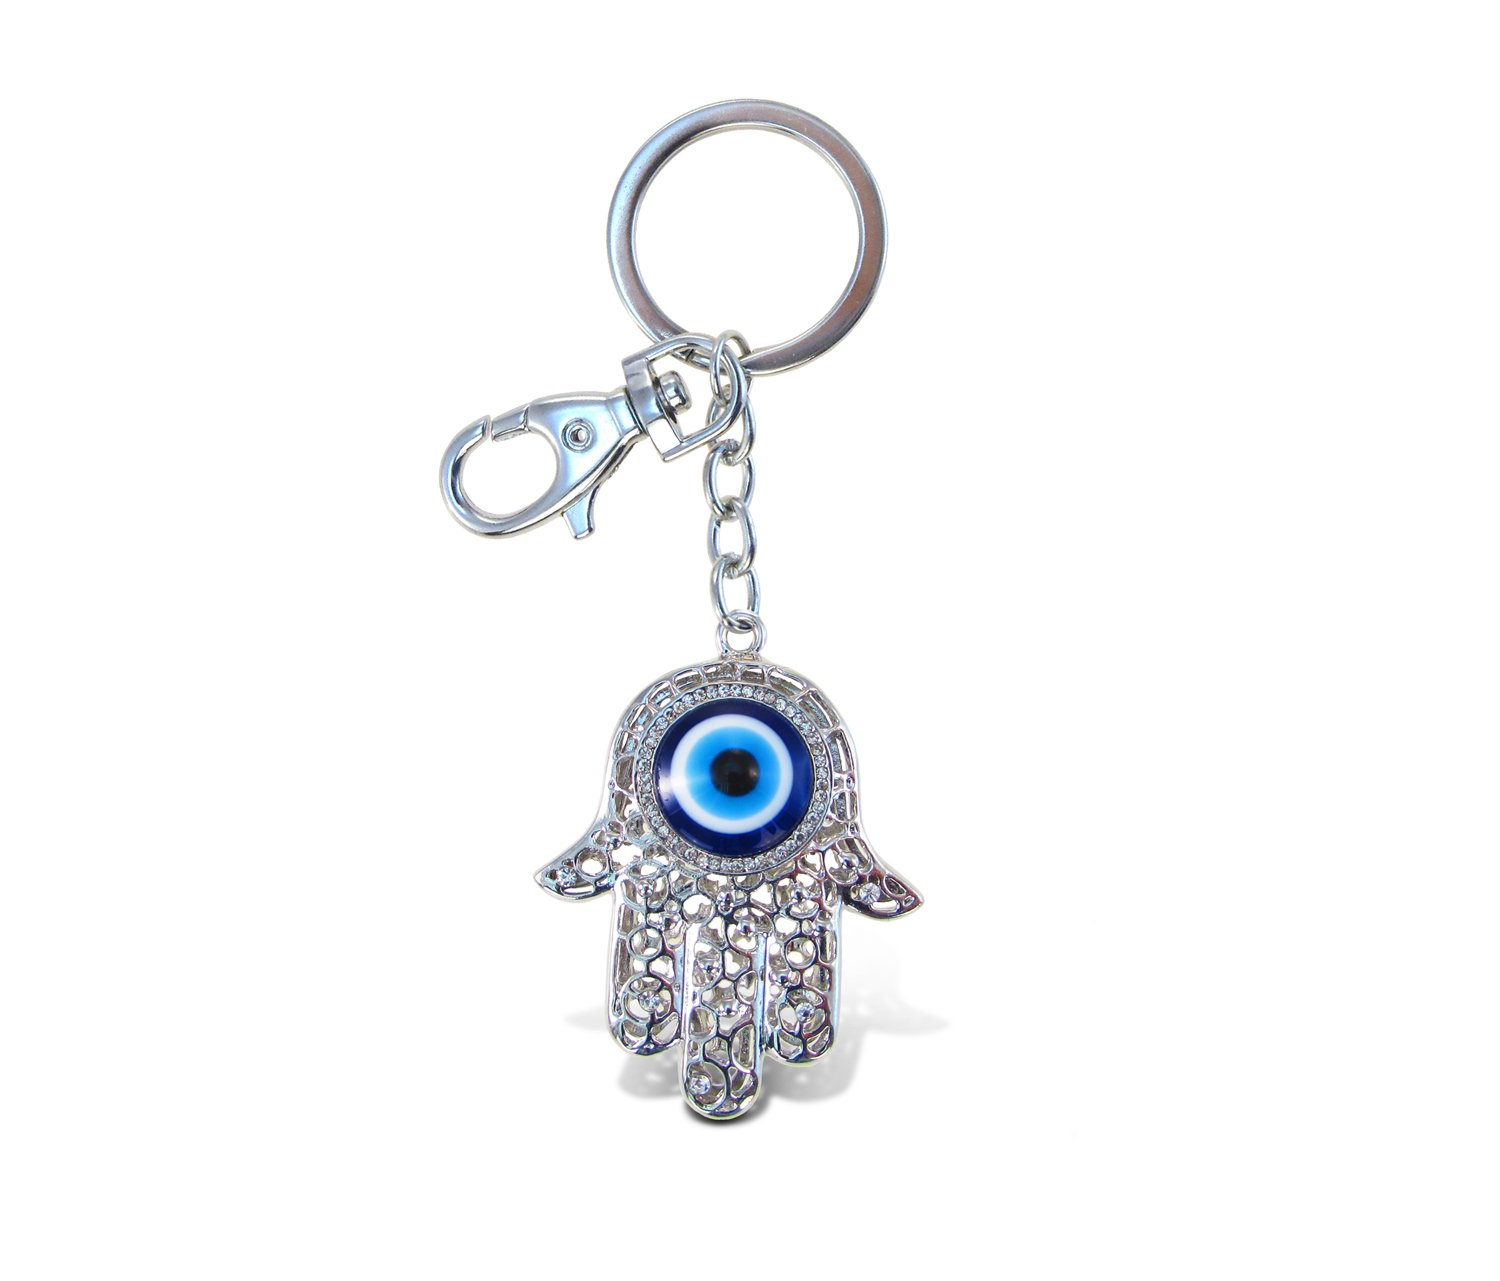 """Puzzled Sparkling Elegant Charms """"Evil Eye"""" Metal Ring Keychain Cute for Kids Girls Teens Women Bag Tote Backpack Car Key Mobile Phone Decoration Great for Party School Birthday Favors 4 Inch"""